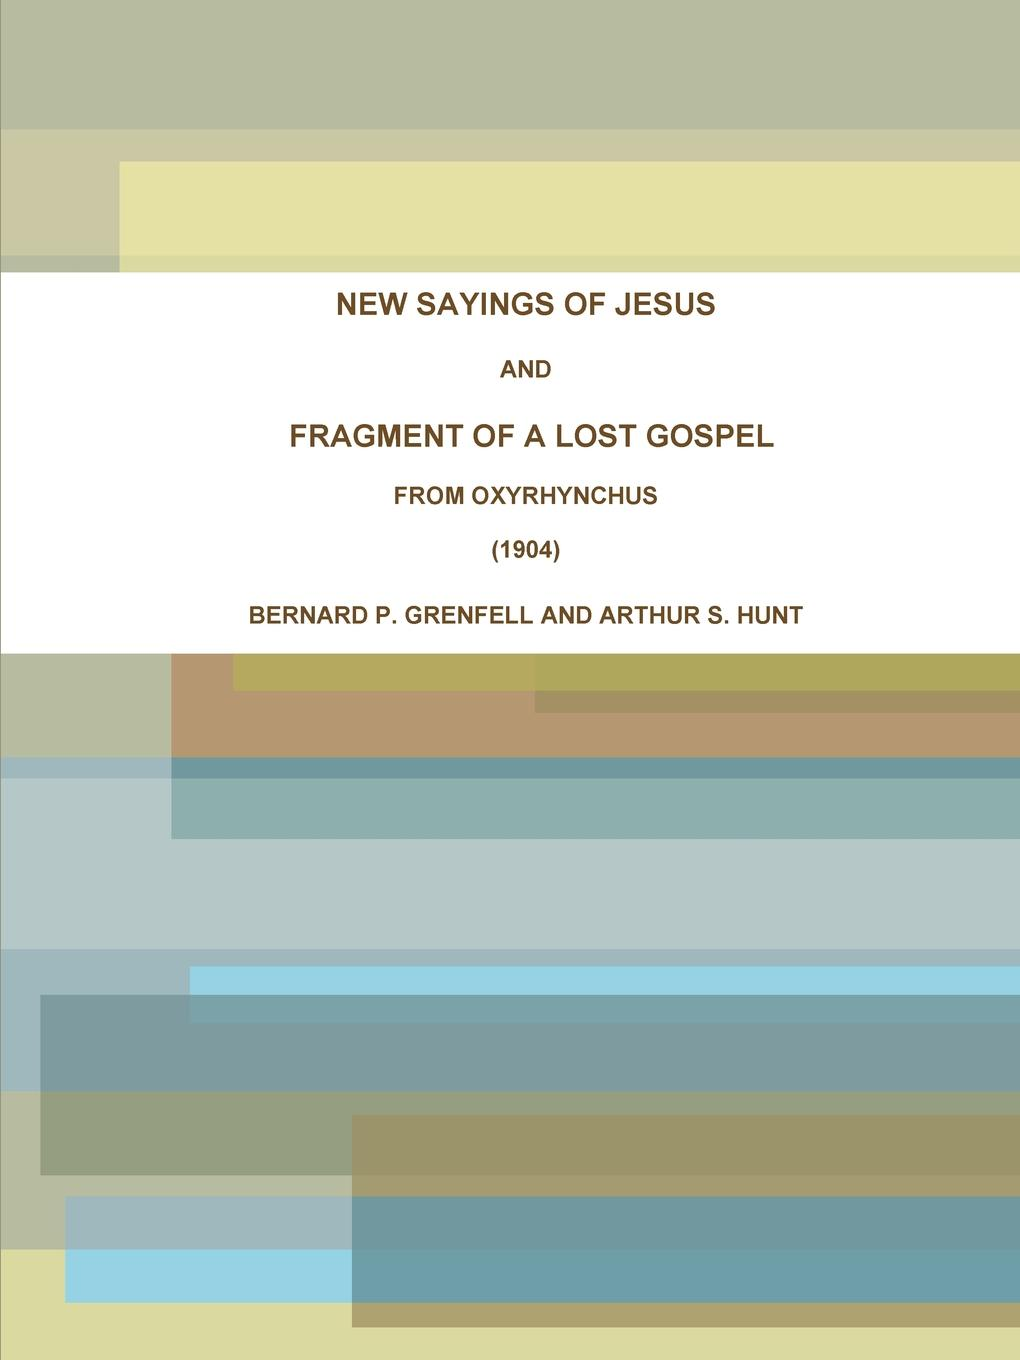 BERNARD P. GRENFELL, ARTHUR S. HUNT NEW SAYINGS OF JESUS AND FRAGMENT OF A LOST GOSPEL FROM OXYRHYNCHUS (1904) christine rimmer stroke of fortune